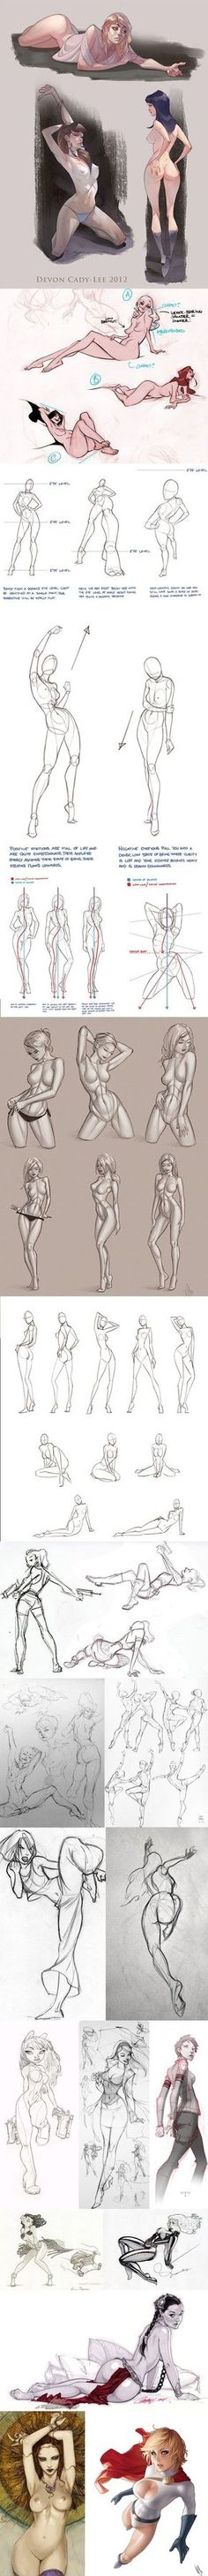 Female_Pin_Up_Pose_Refs_1